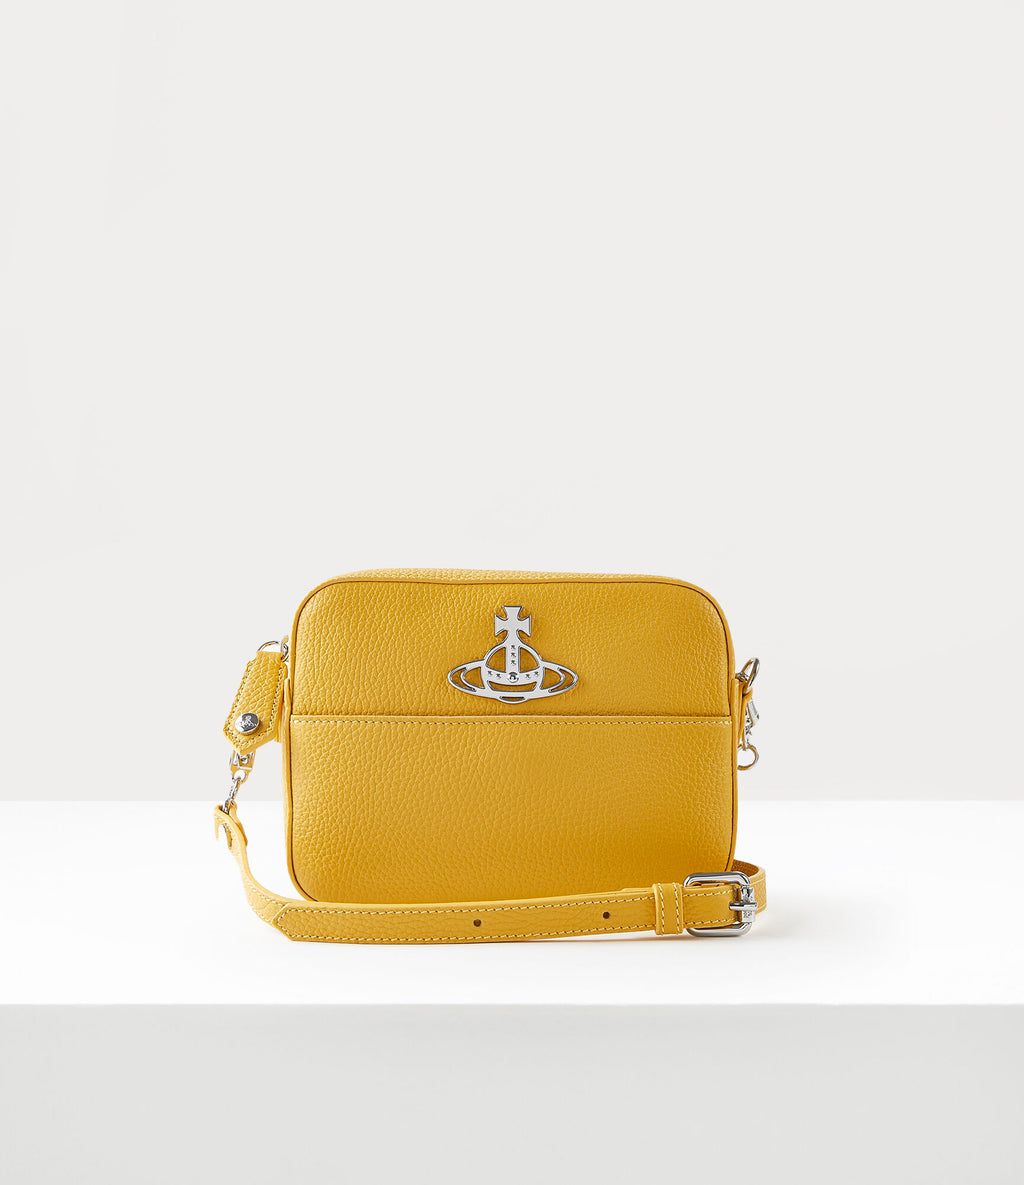 Rachel Yellow Crossbody Bag